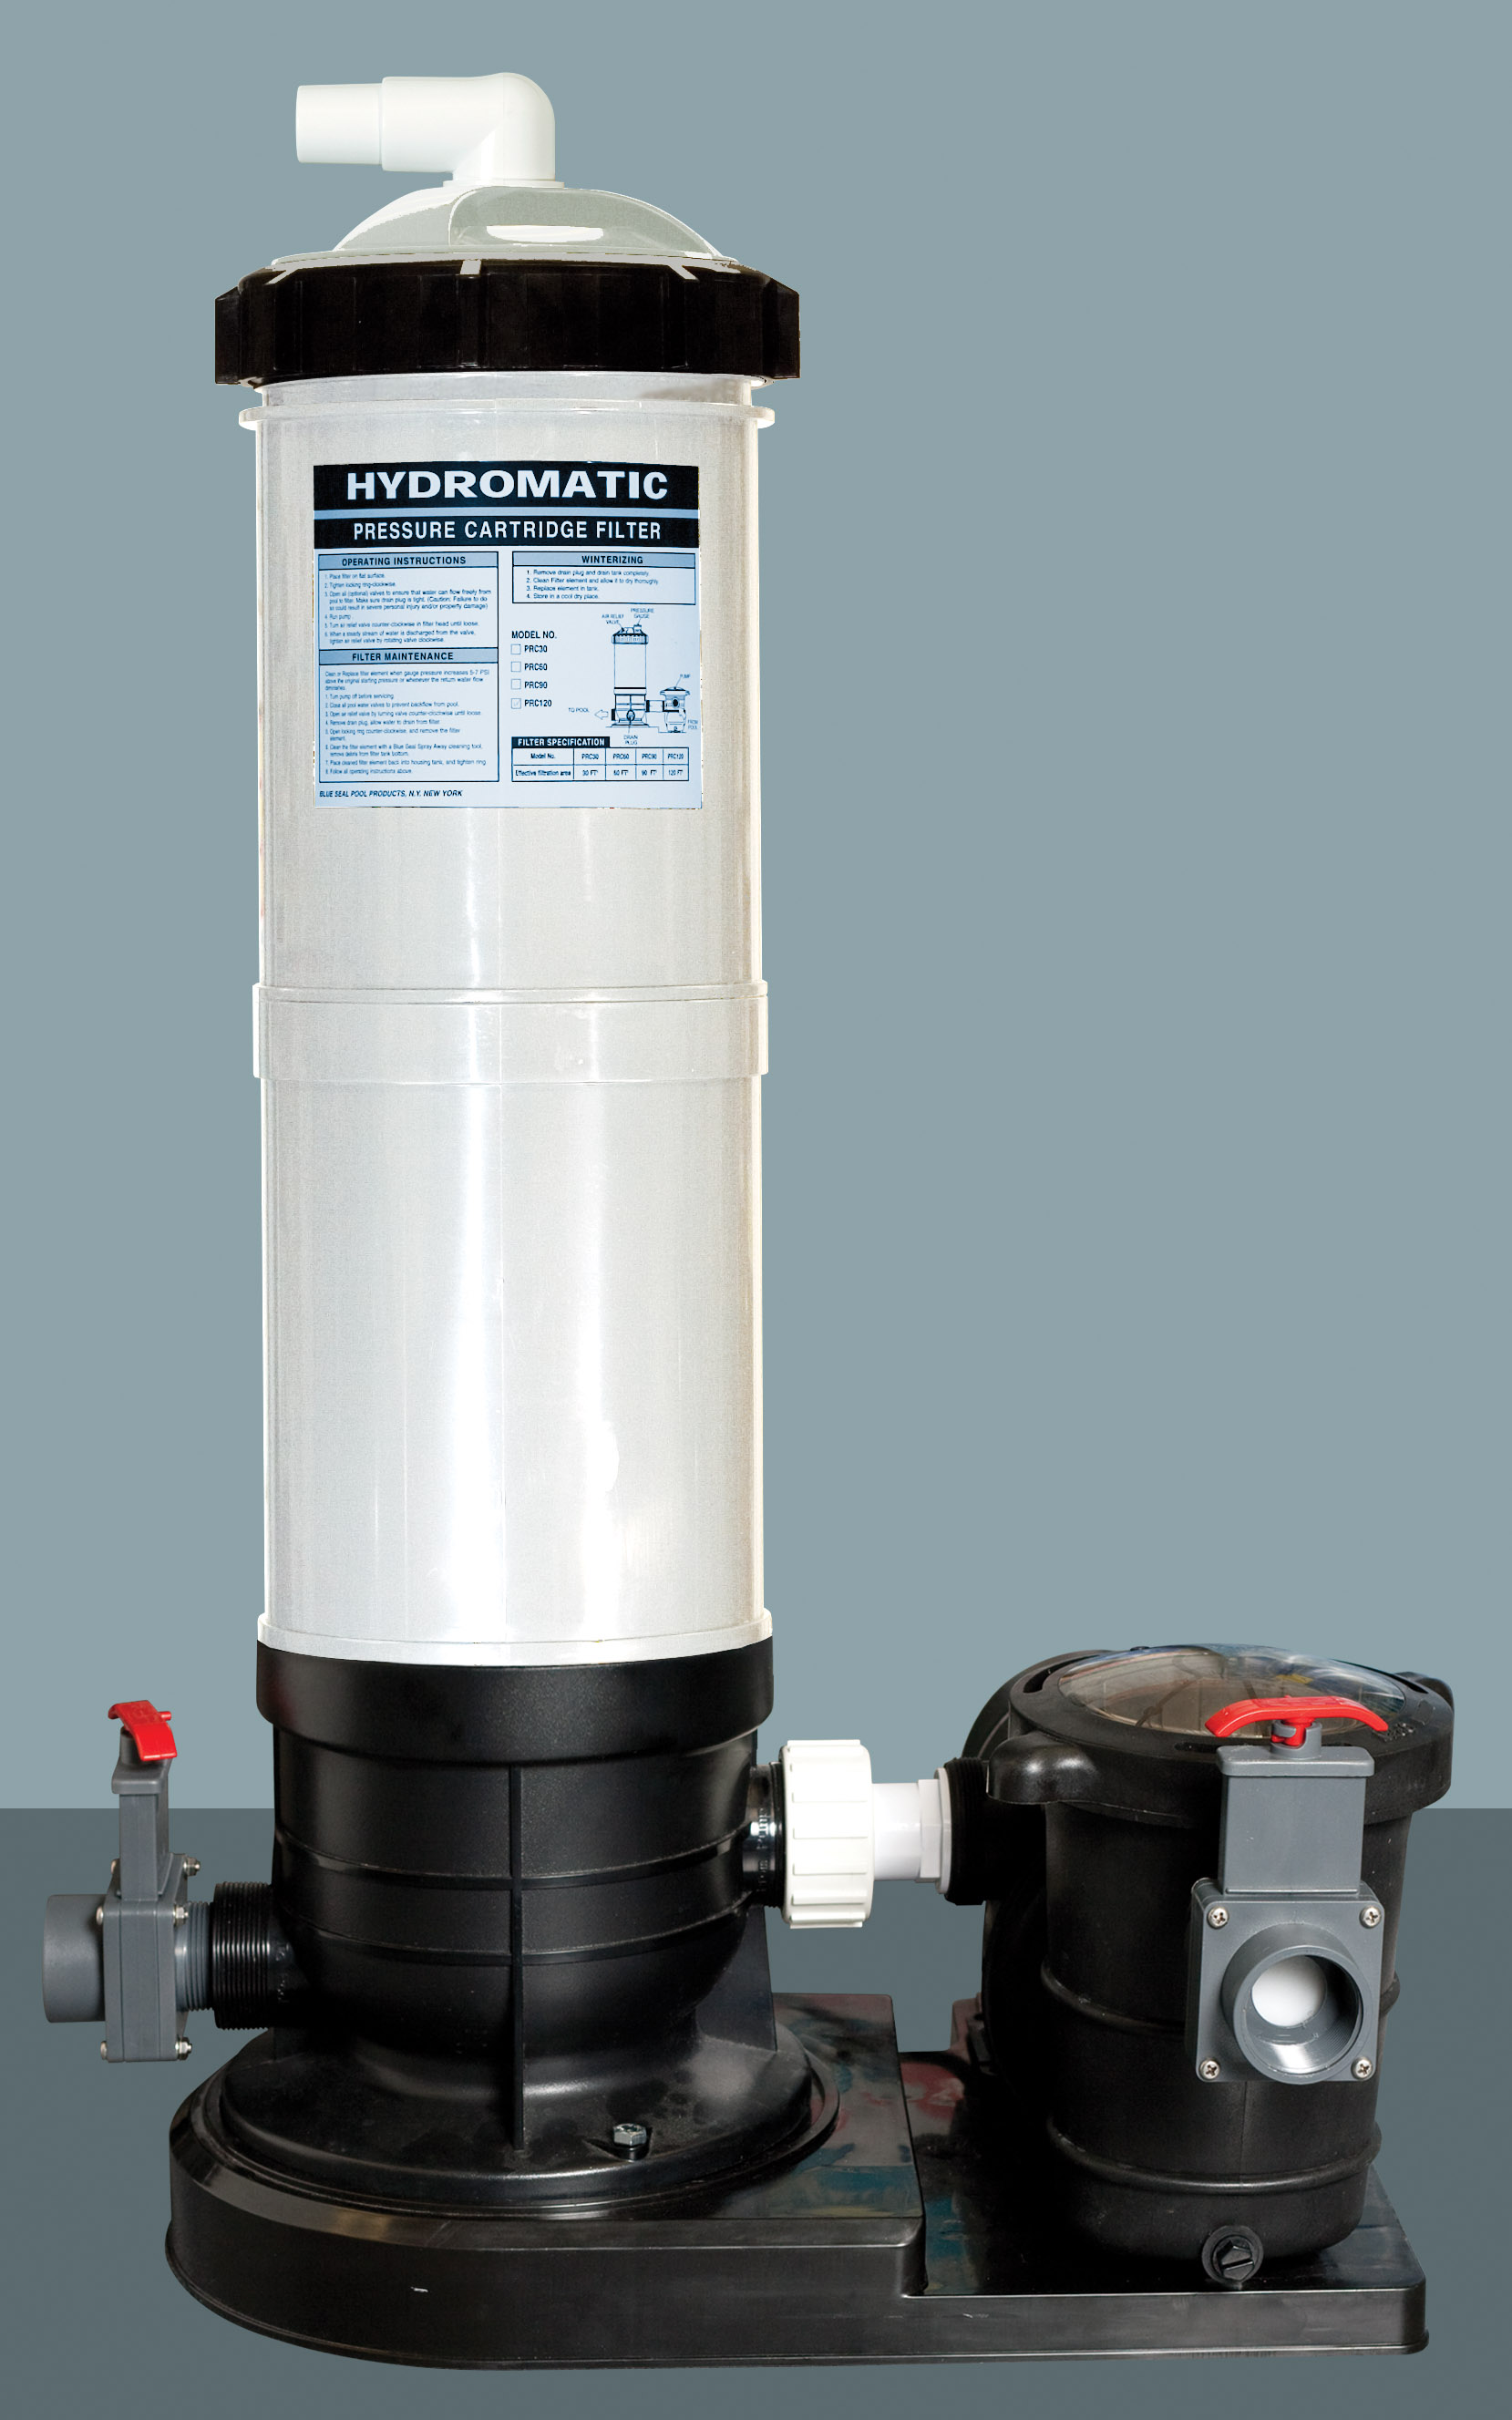 Hydromax Pressurized De Filter Systems From Swimming